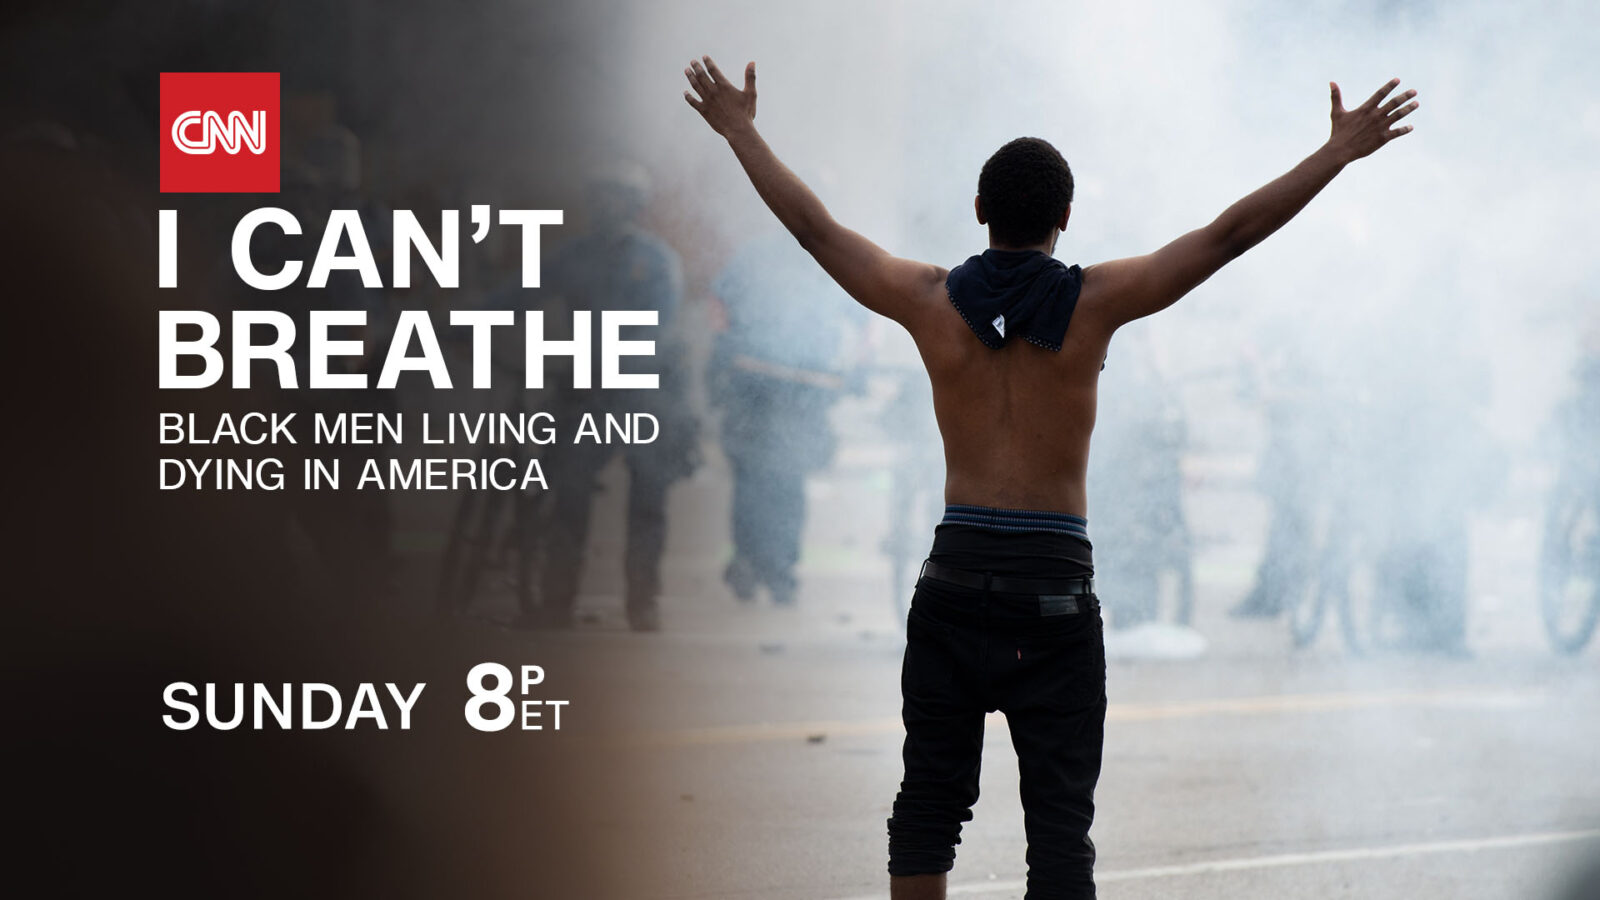 I Can't Breathe: Black Men Living and Dying in America